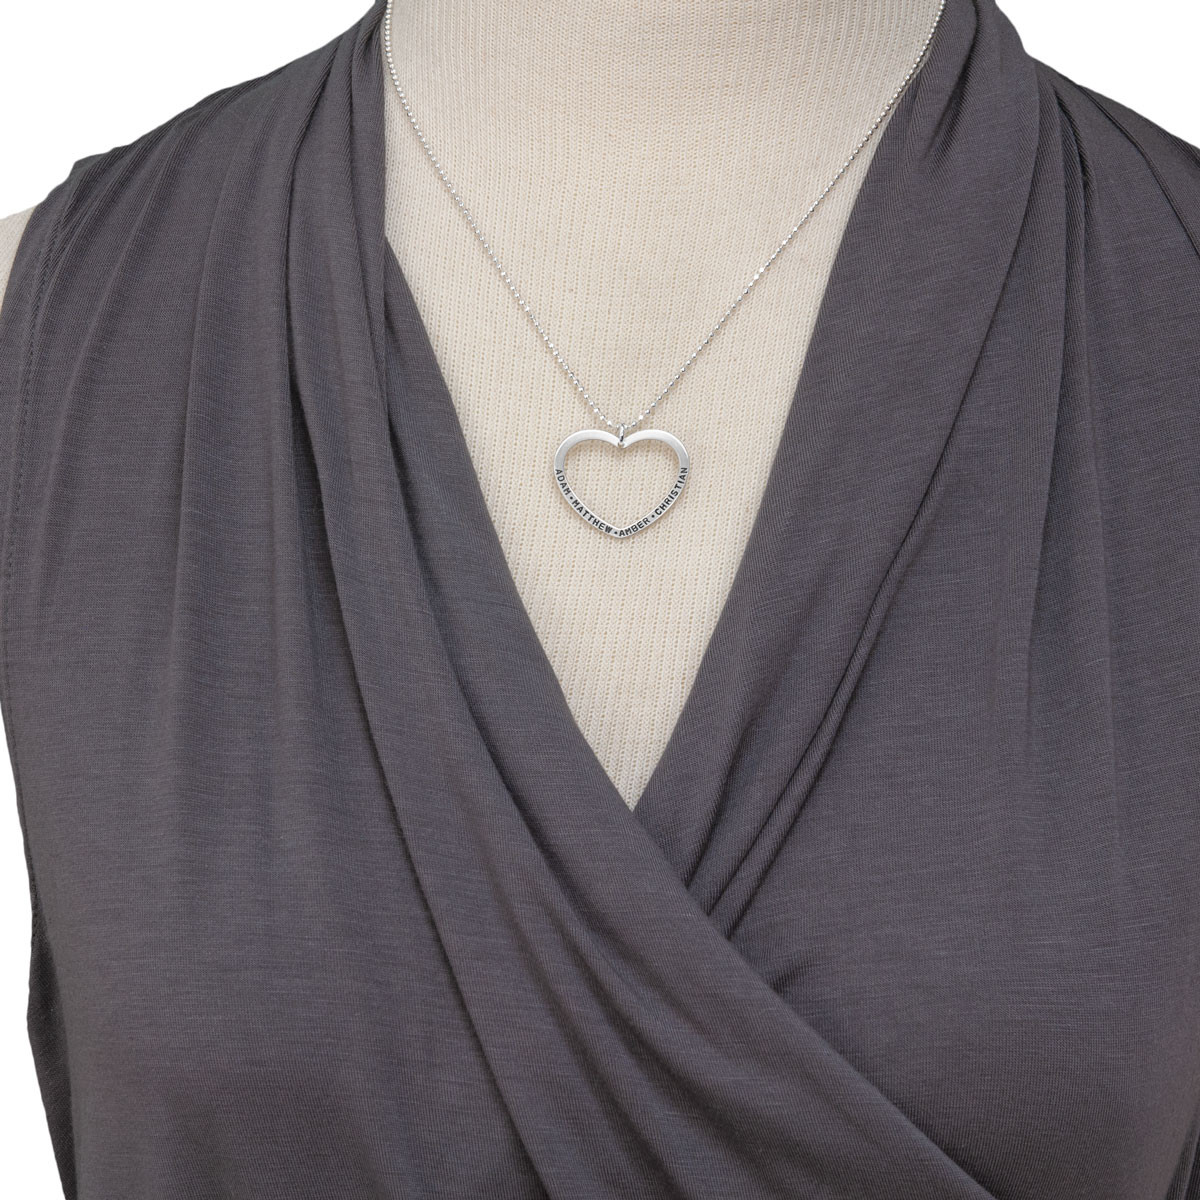 Open Heart Charm Silver Necklace, shown on model